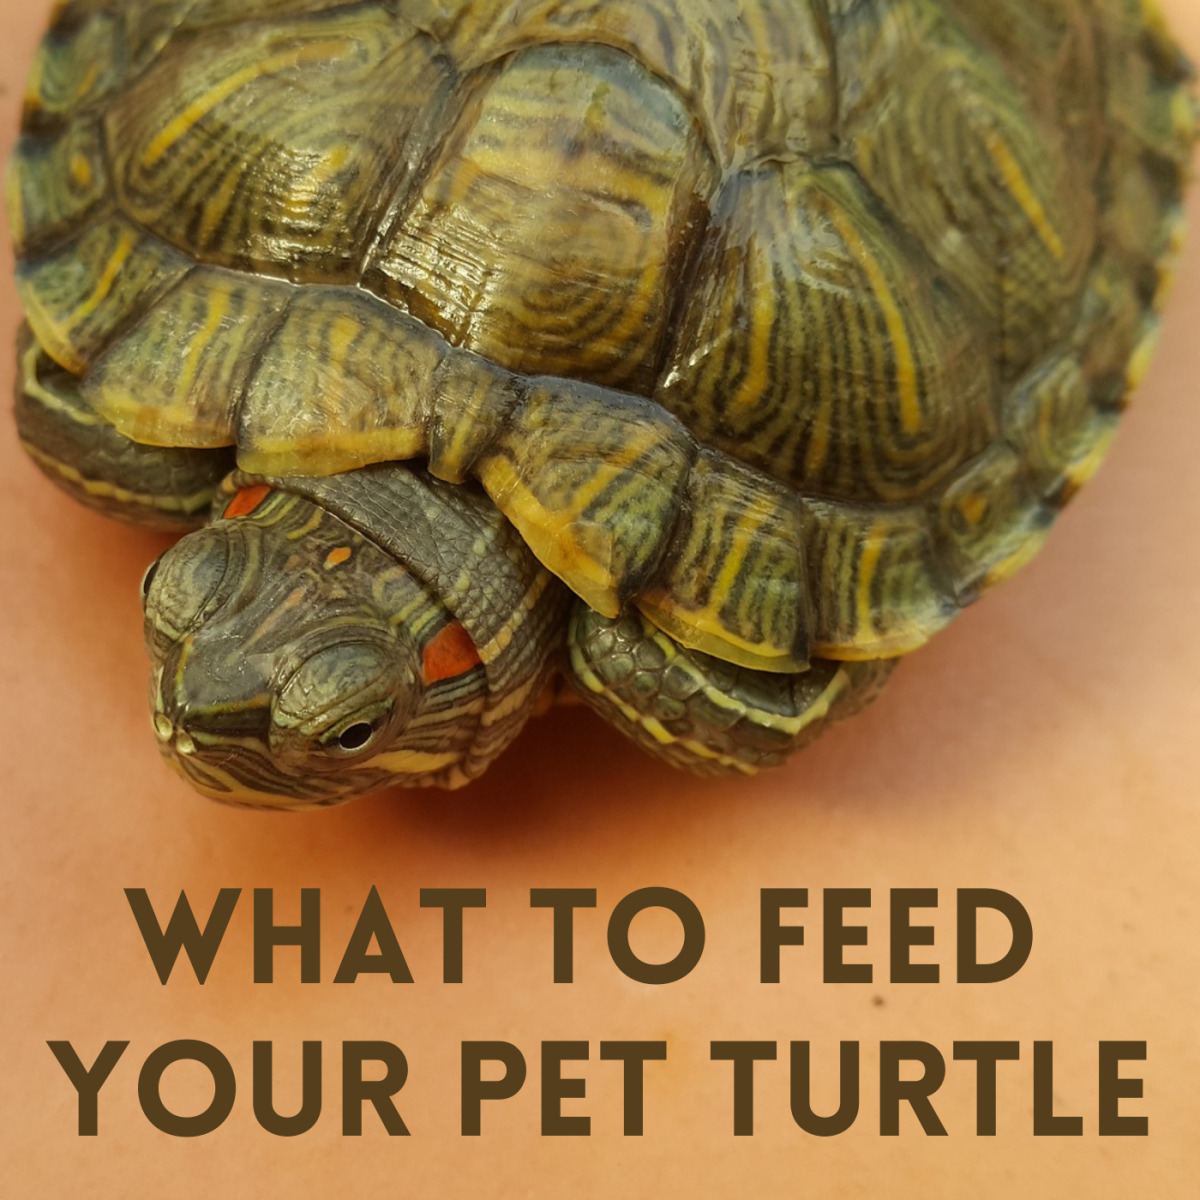 To get the right food for your turtle, first you'll need to figure out what type of turtle you have.